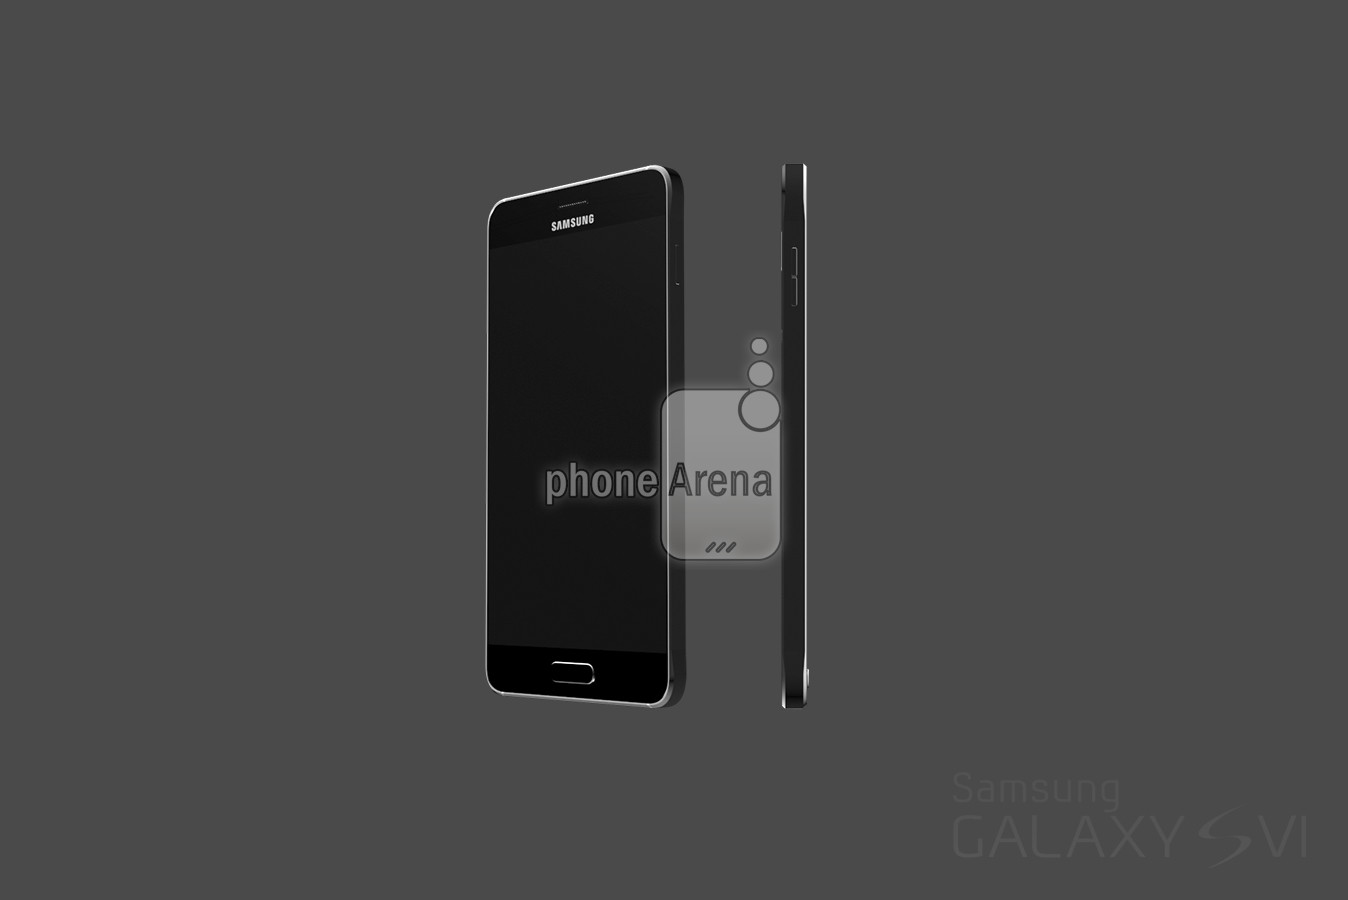 Alleged Galaxy S6 renders 2 - Leaked Images and Renders Show the Upcoming Galaxy S6 along with a few Covers